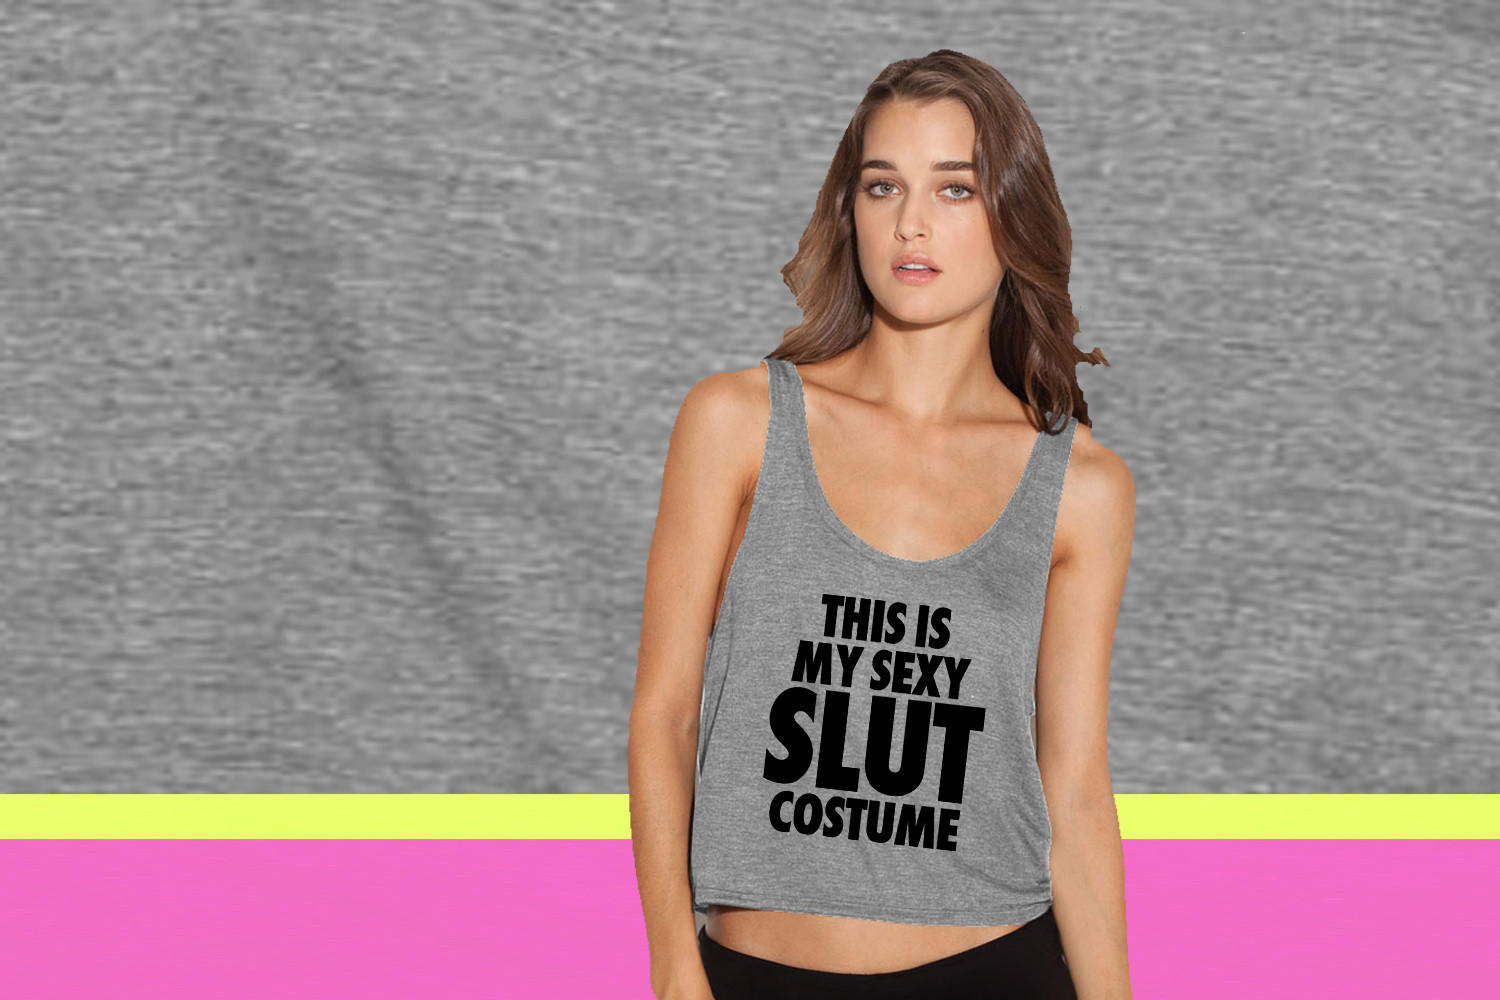 Sexiest tank top sluts really